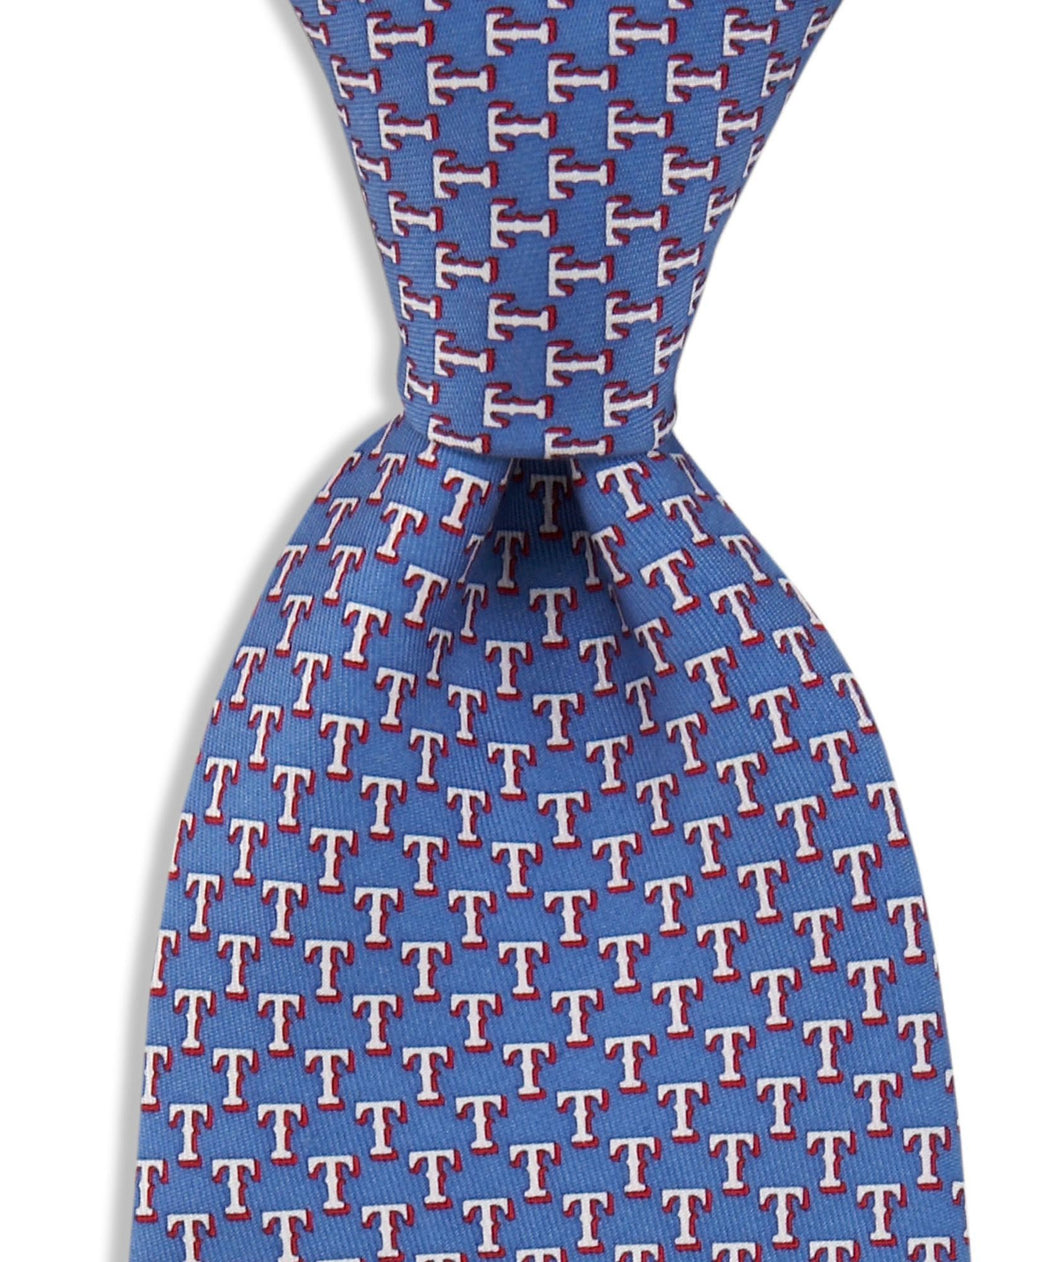 Vineyard Vines ACCESSORIES - NECKWEAR - TIES Vineyard Vines, Texas Rangers Tie, Royal Blue